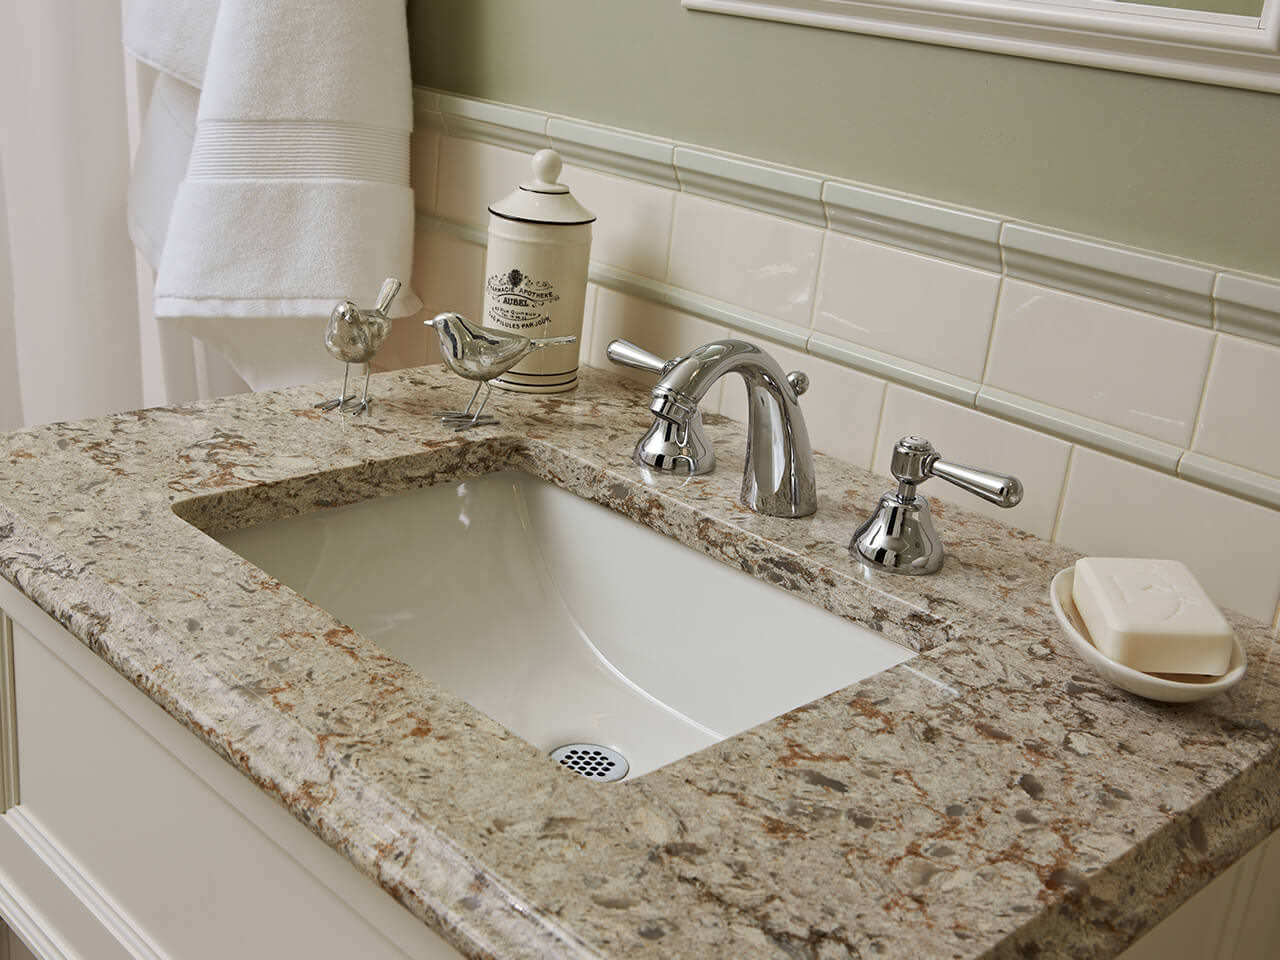 Windermere Cambria Quartz Countertops Pictures Pricing Samples